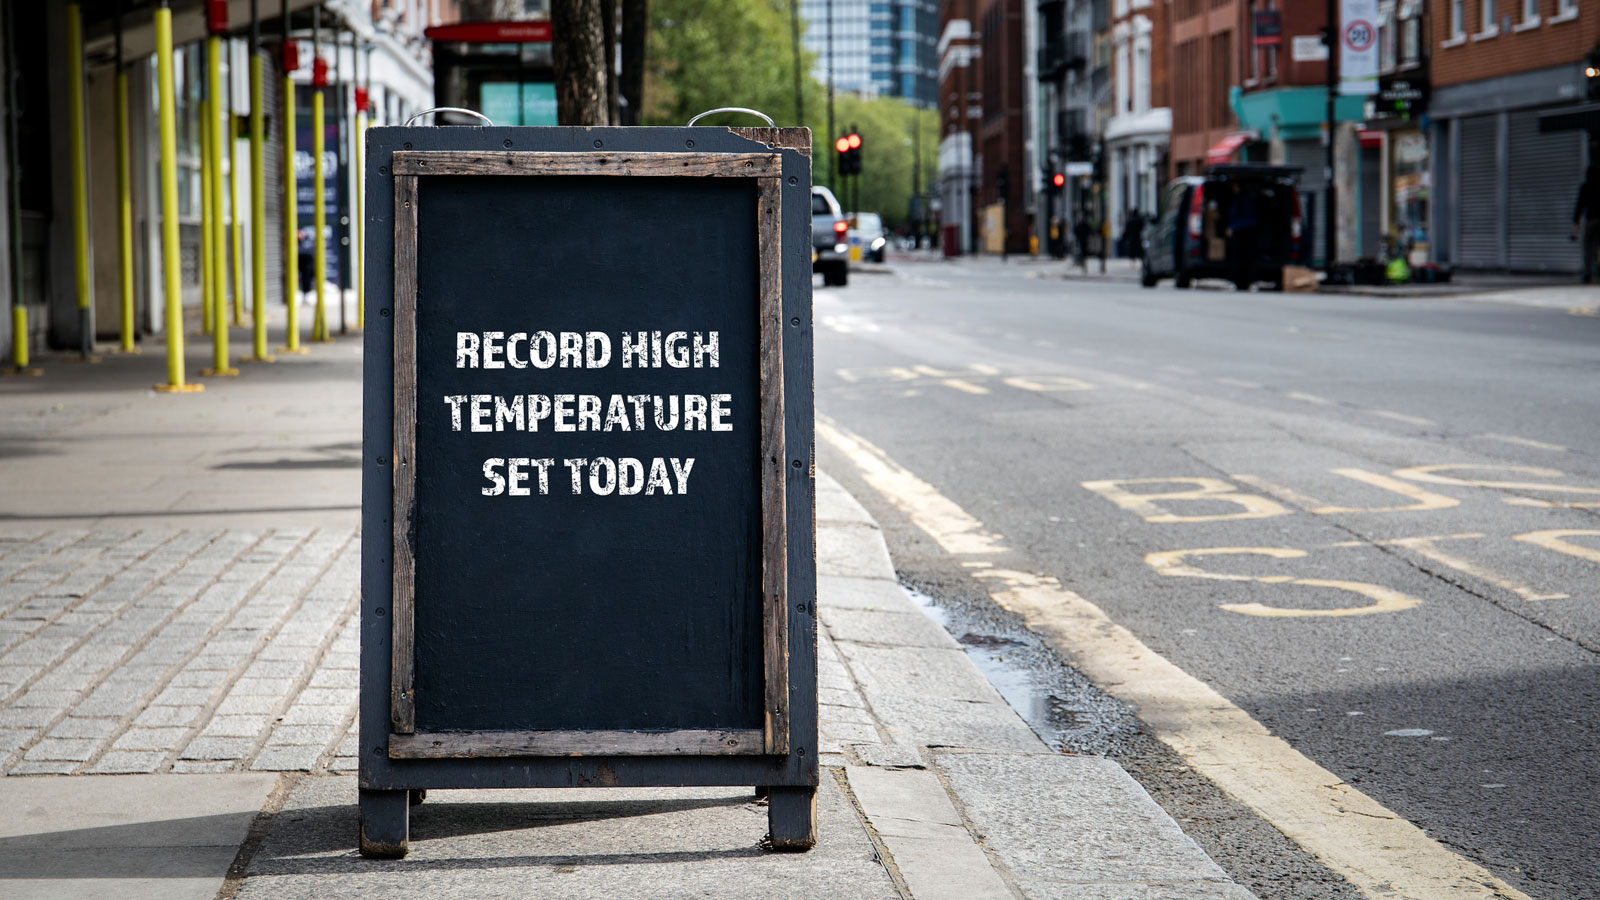 Record high temps sign